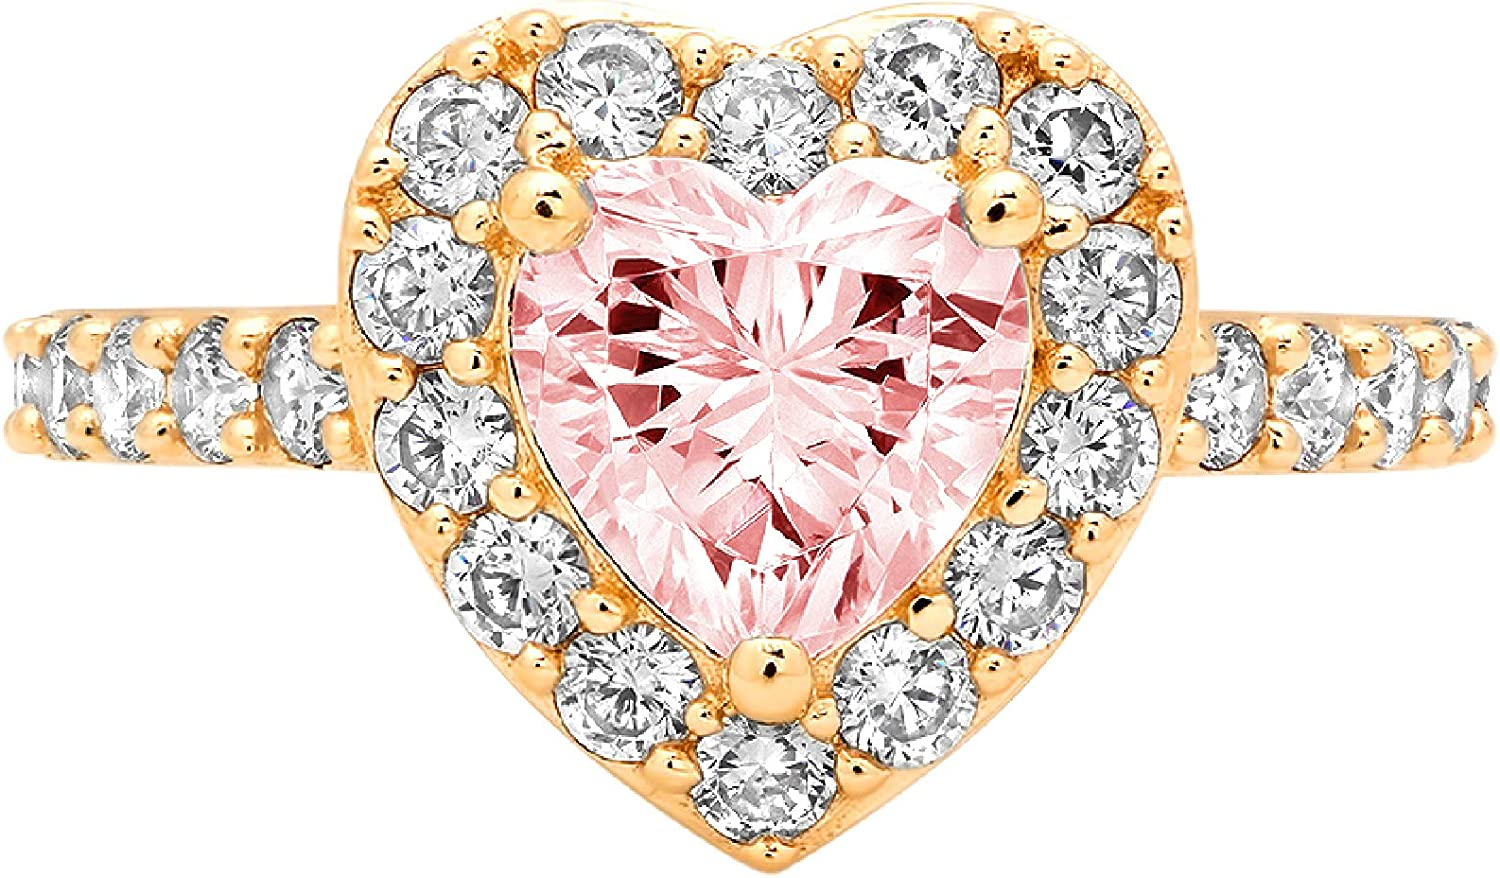 2.19ct Brilliant Heart Cut Solitaire with Accent Halo Pink Ideal VVS1 Simulated Diamond CZ Engagement Promise Statement Anniversary Bridal Wedding Ring 14k Yellow Gold